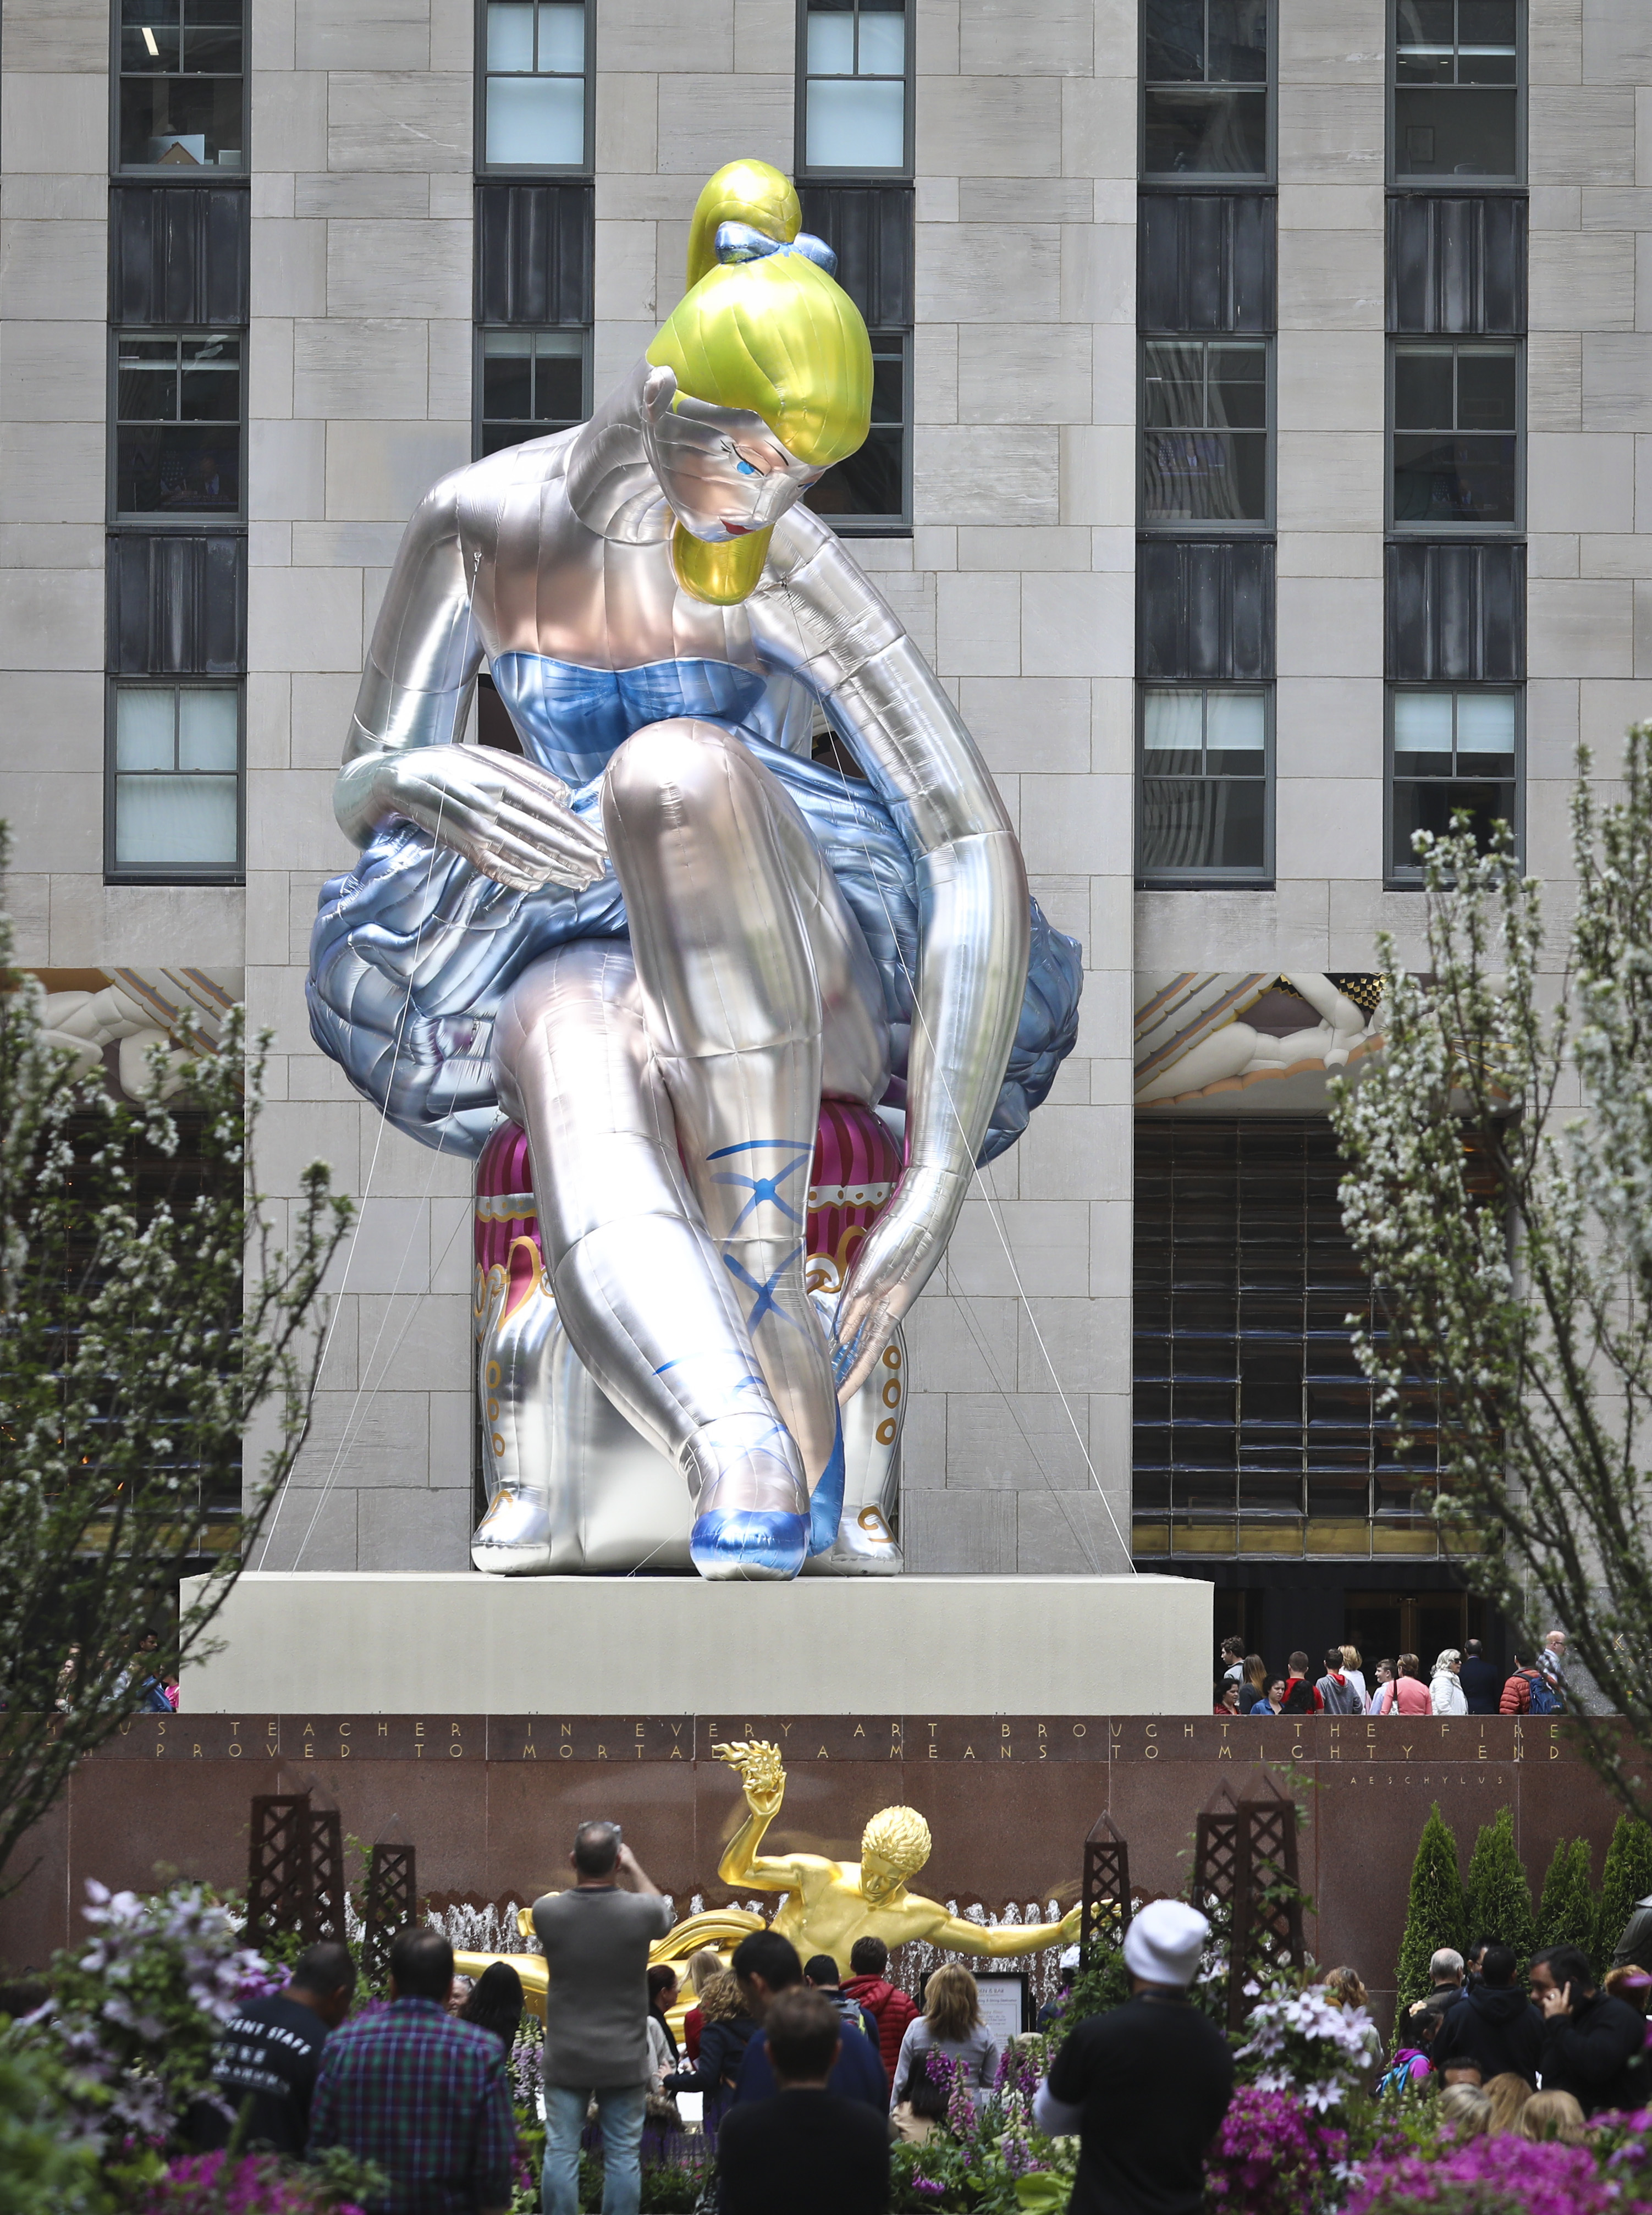 """Seated Ballerina"", center, the public art exhibition of a 45-foot tall inflatable nylon sculpture depicting a seated ballerina from artist Jeff Koons' Antiquity series, is displayed at Rockefeller Center after it was unveiled Friday May 12, 2017, in New York. (AP Photo/Bebeto Matthews)"